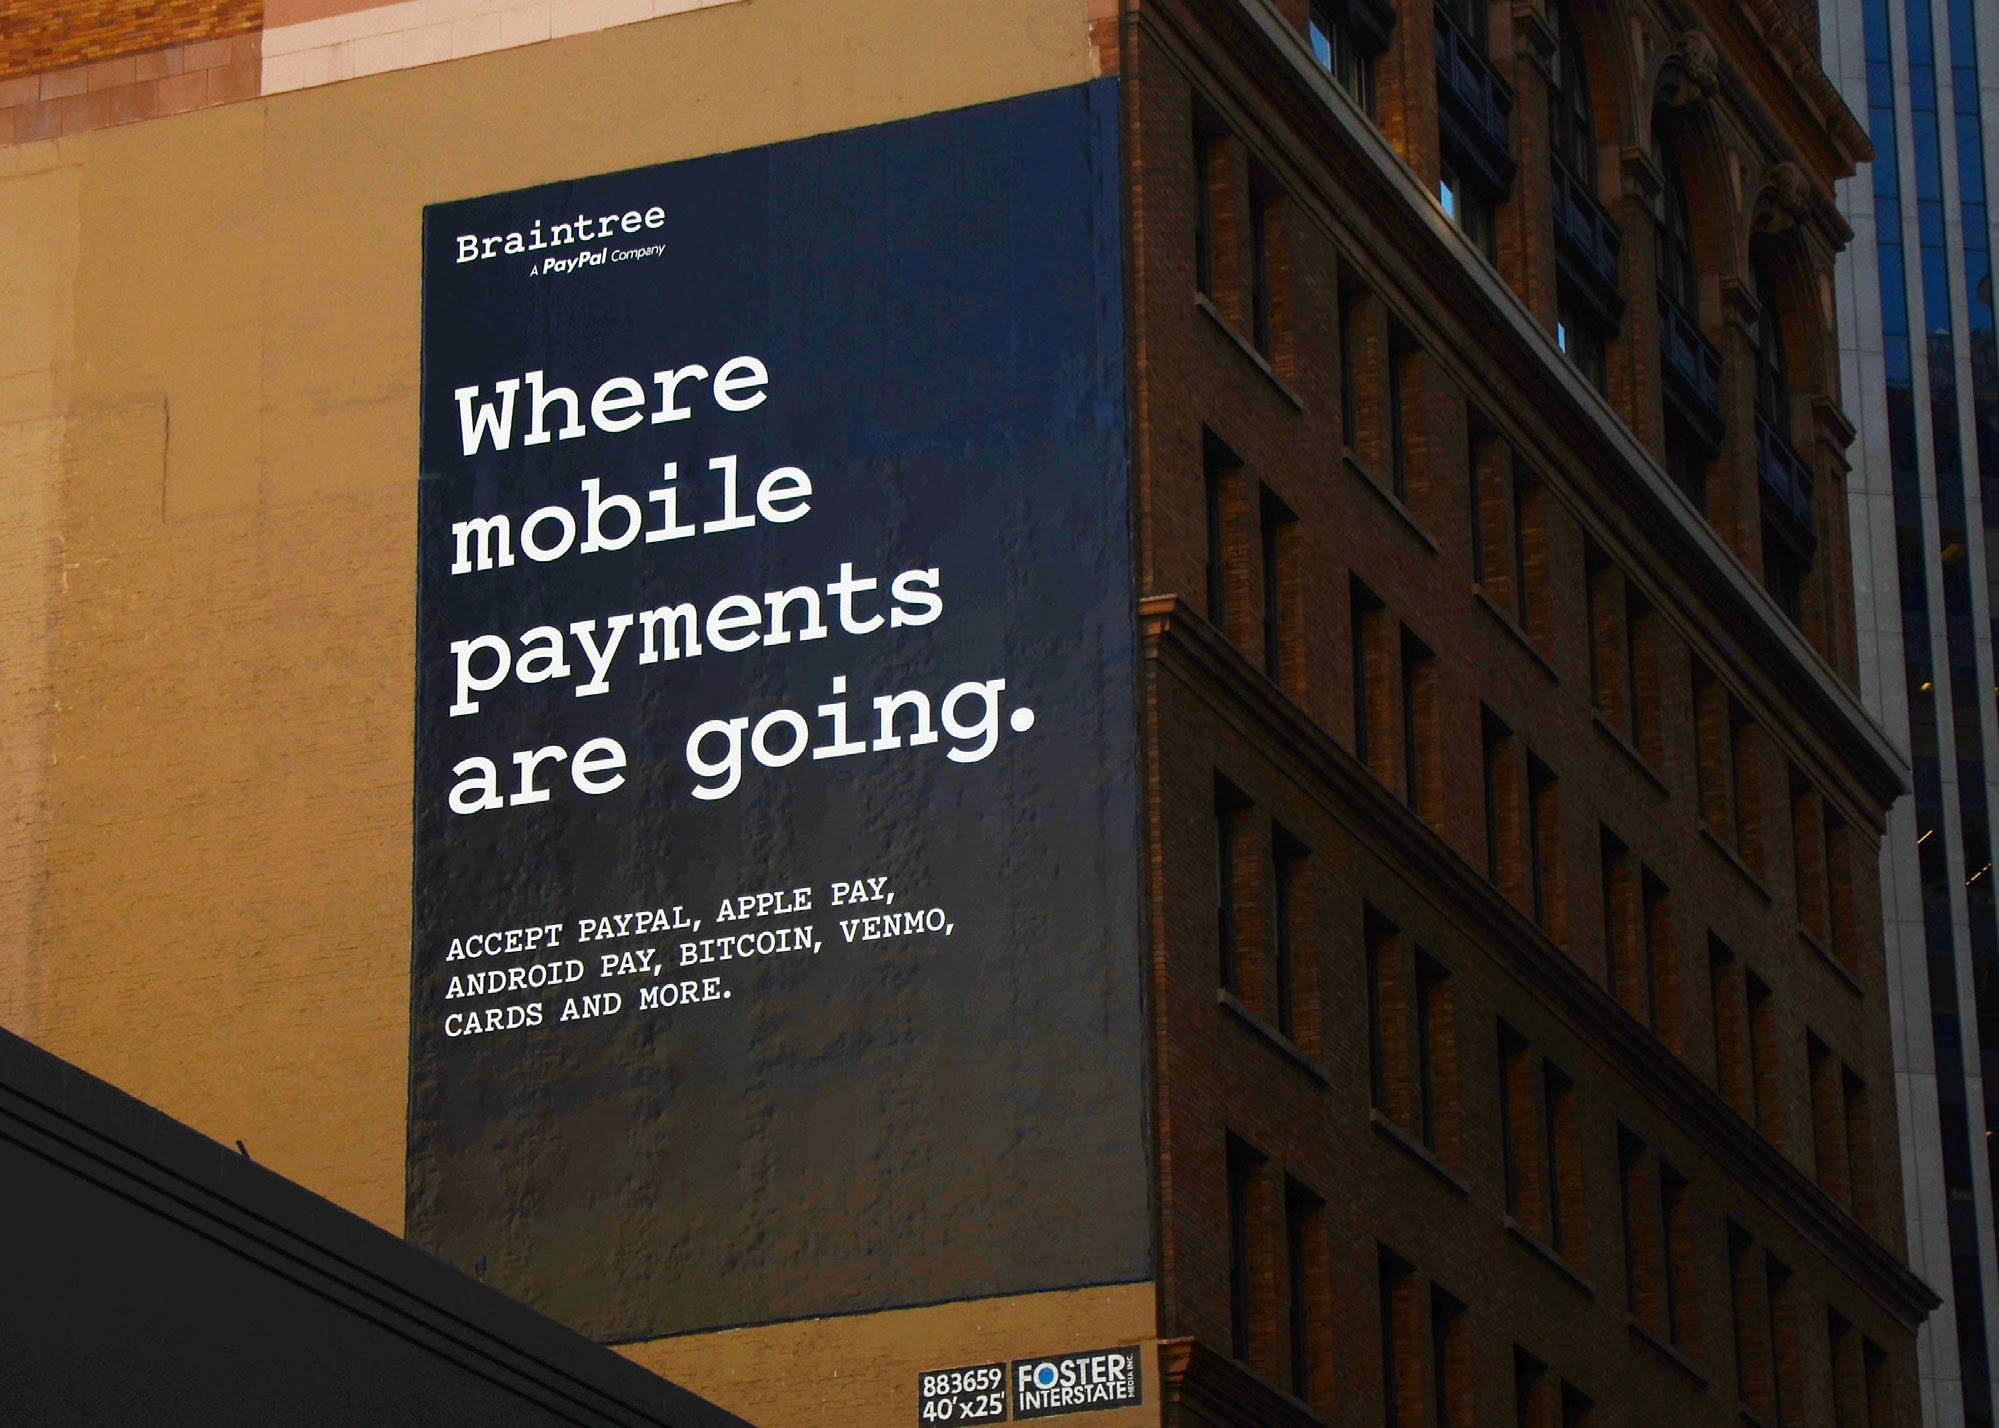 where mobile payments are going